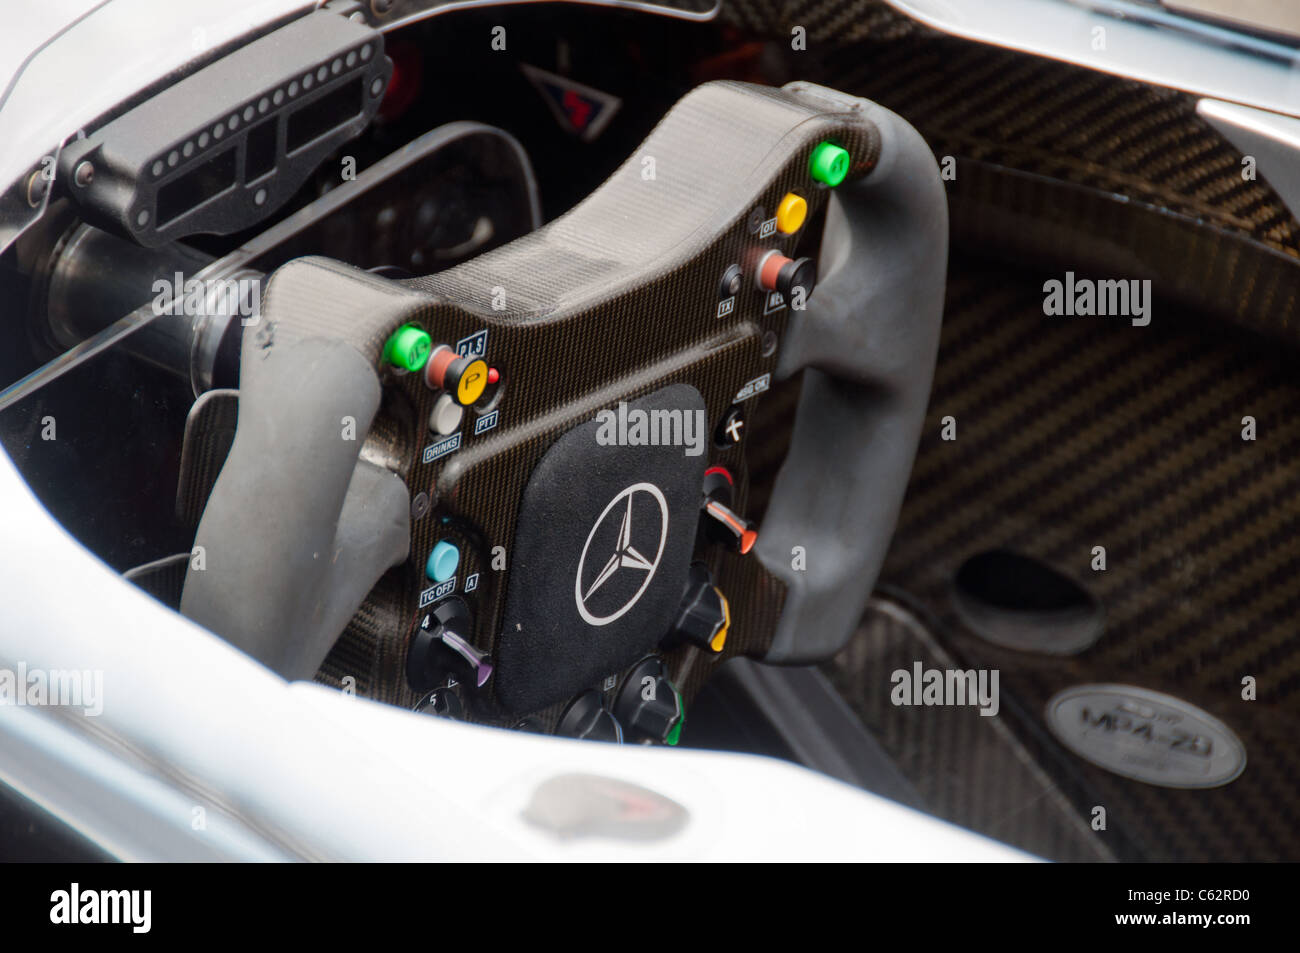 Mercedes-Benz presenting a Formula 1 race car at event 'Sternstunden - 125 years Mercedes-Benz' on August - Stock Image